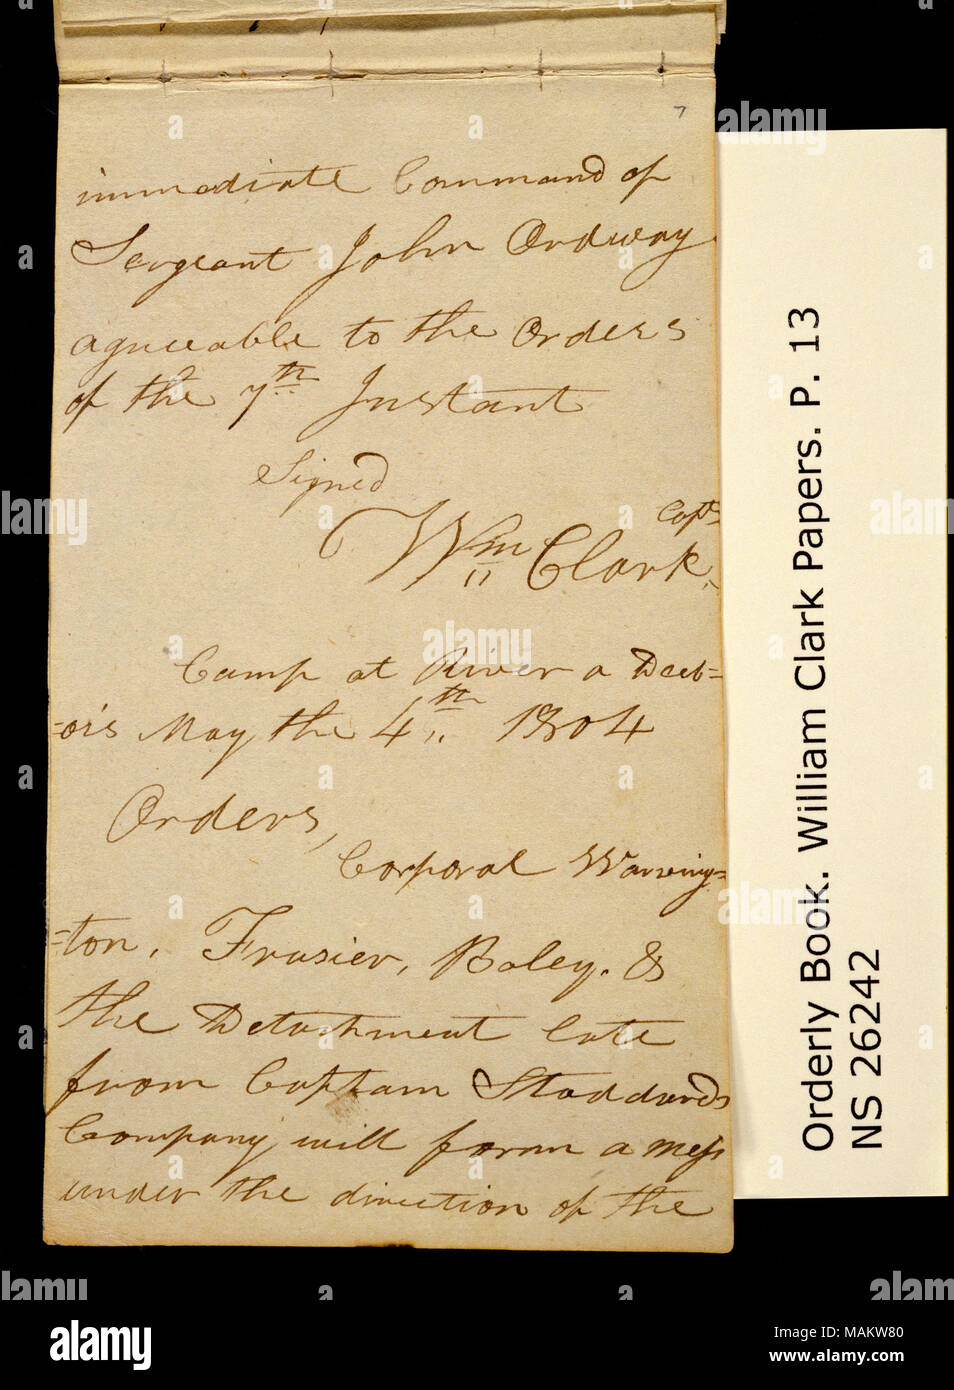 'Detachment Orders. April 21st, 1804. cont.' and 'Camp at River a Dubois, May 4th 1804.' Title: Clark Family Collection: Volume 20. Orderly book, page 13, April 21, 1804; May 4, 1804  . 21 April 1804. Clark, William, 1770-1838 - Stock Image